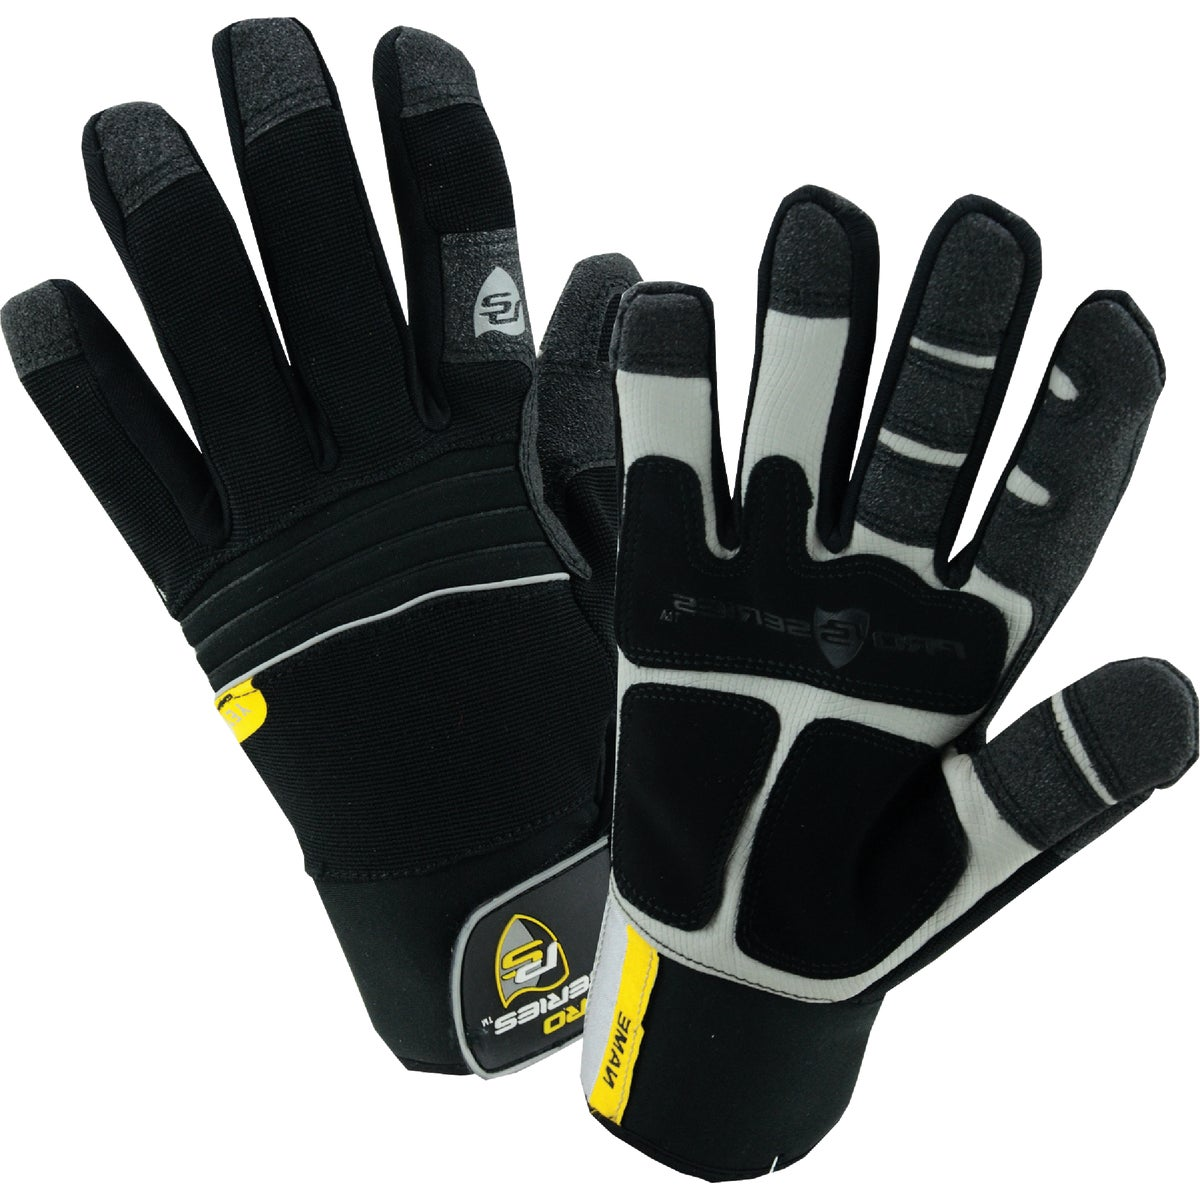 LRG COLD WEATHER GLOVE - CCG2-04-L by Ironclad Performance